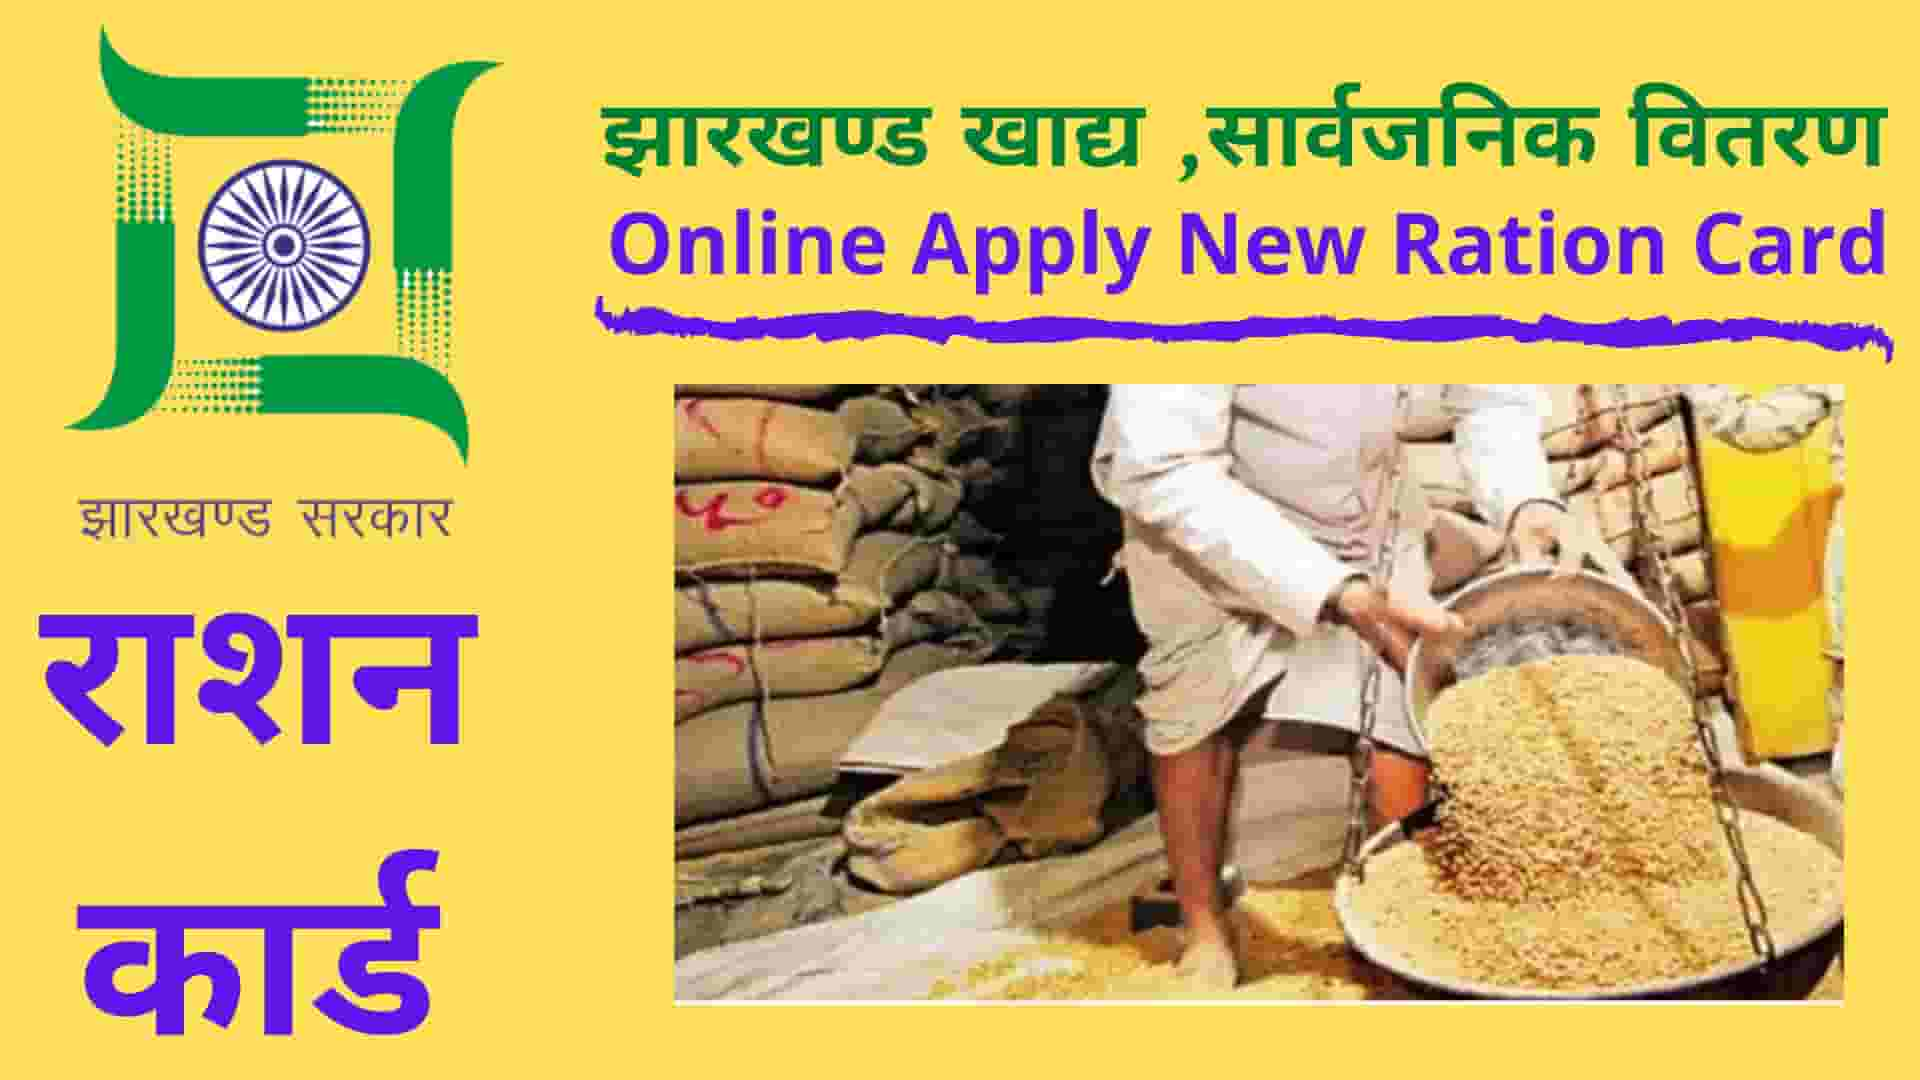 pds jharkhand monthly, jharkhand pds allotment, jharkhand pds cardholder transaction, ration card jharkhand application form, jharkhand ration card holder, pds dealer salary, jharkhand pds jamua,